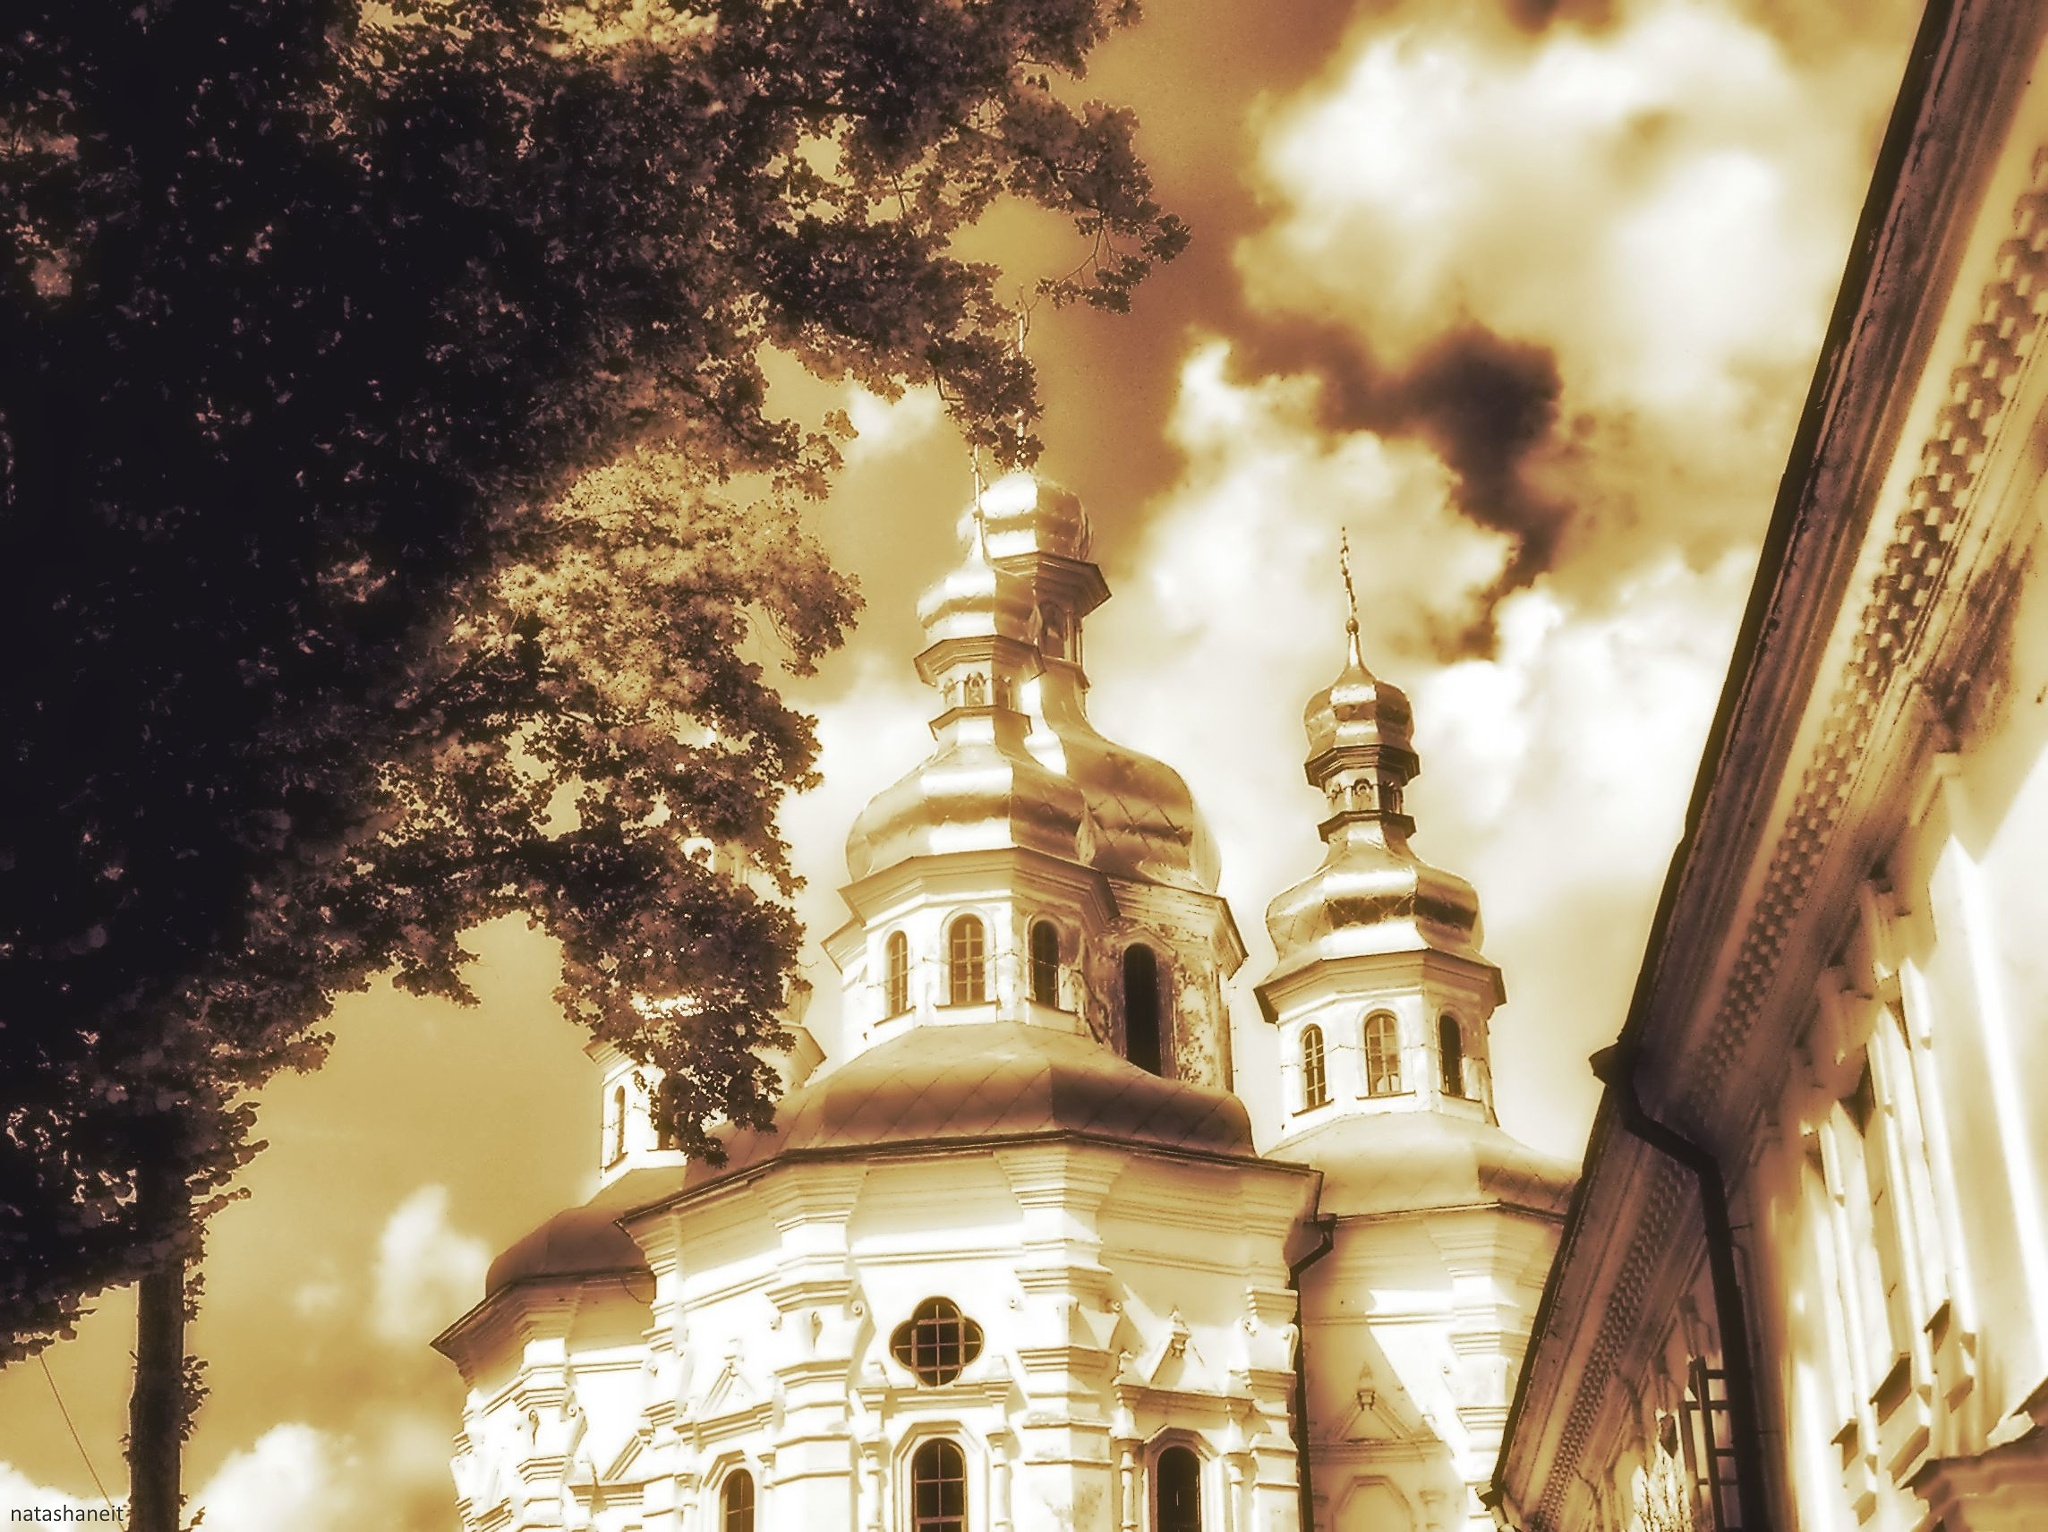 Photo in Landscape #gate church #monastery #caves monastery #temple #golden #domes #trees #sky #clouds